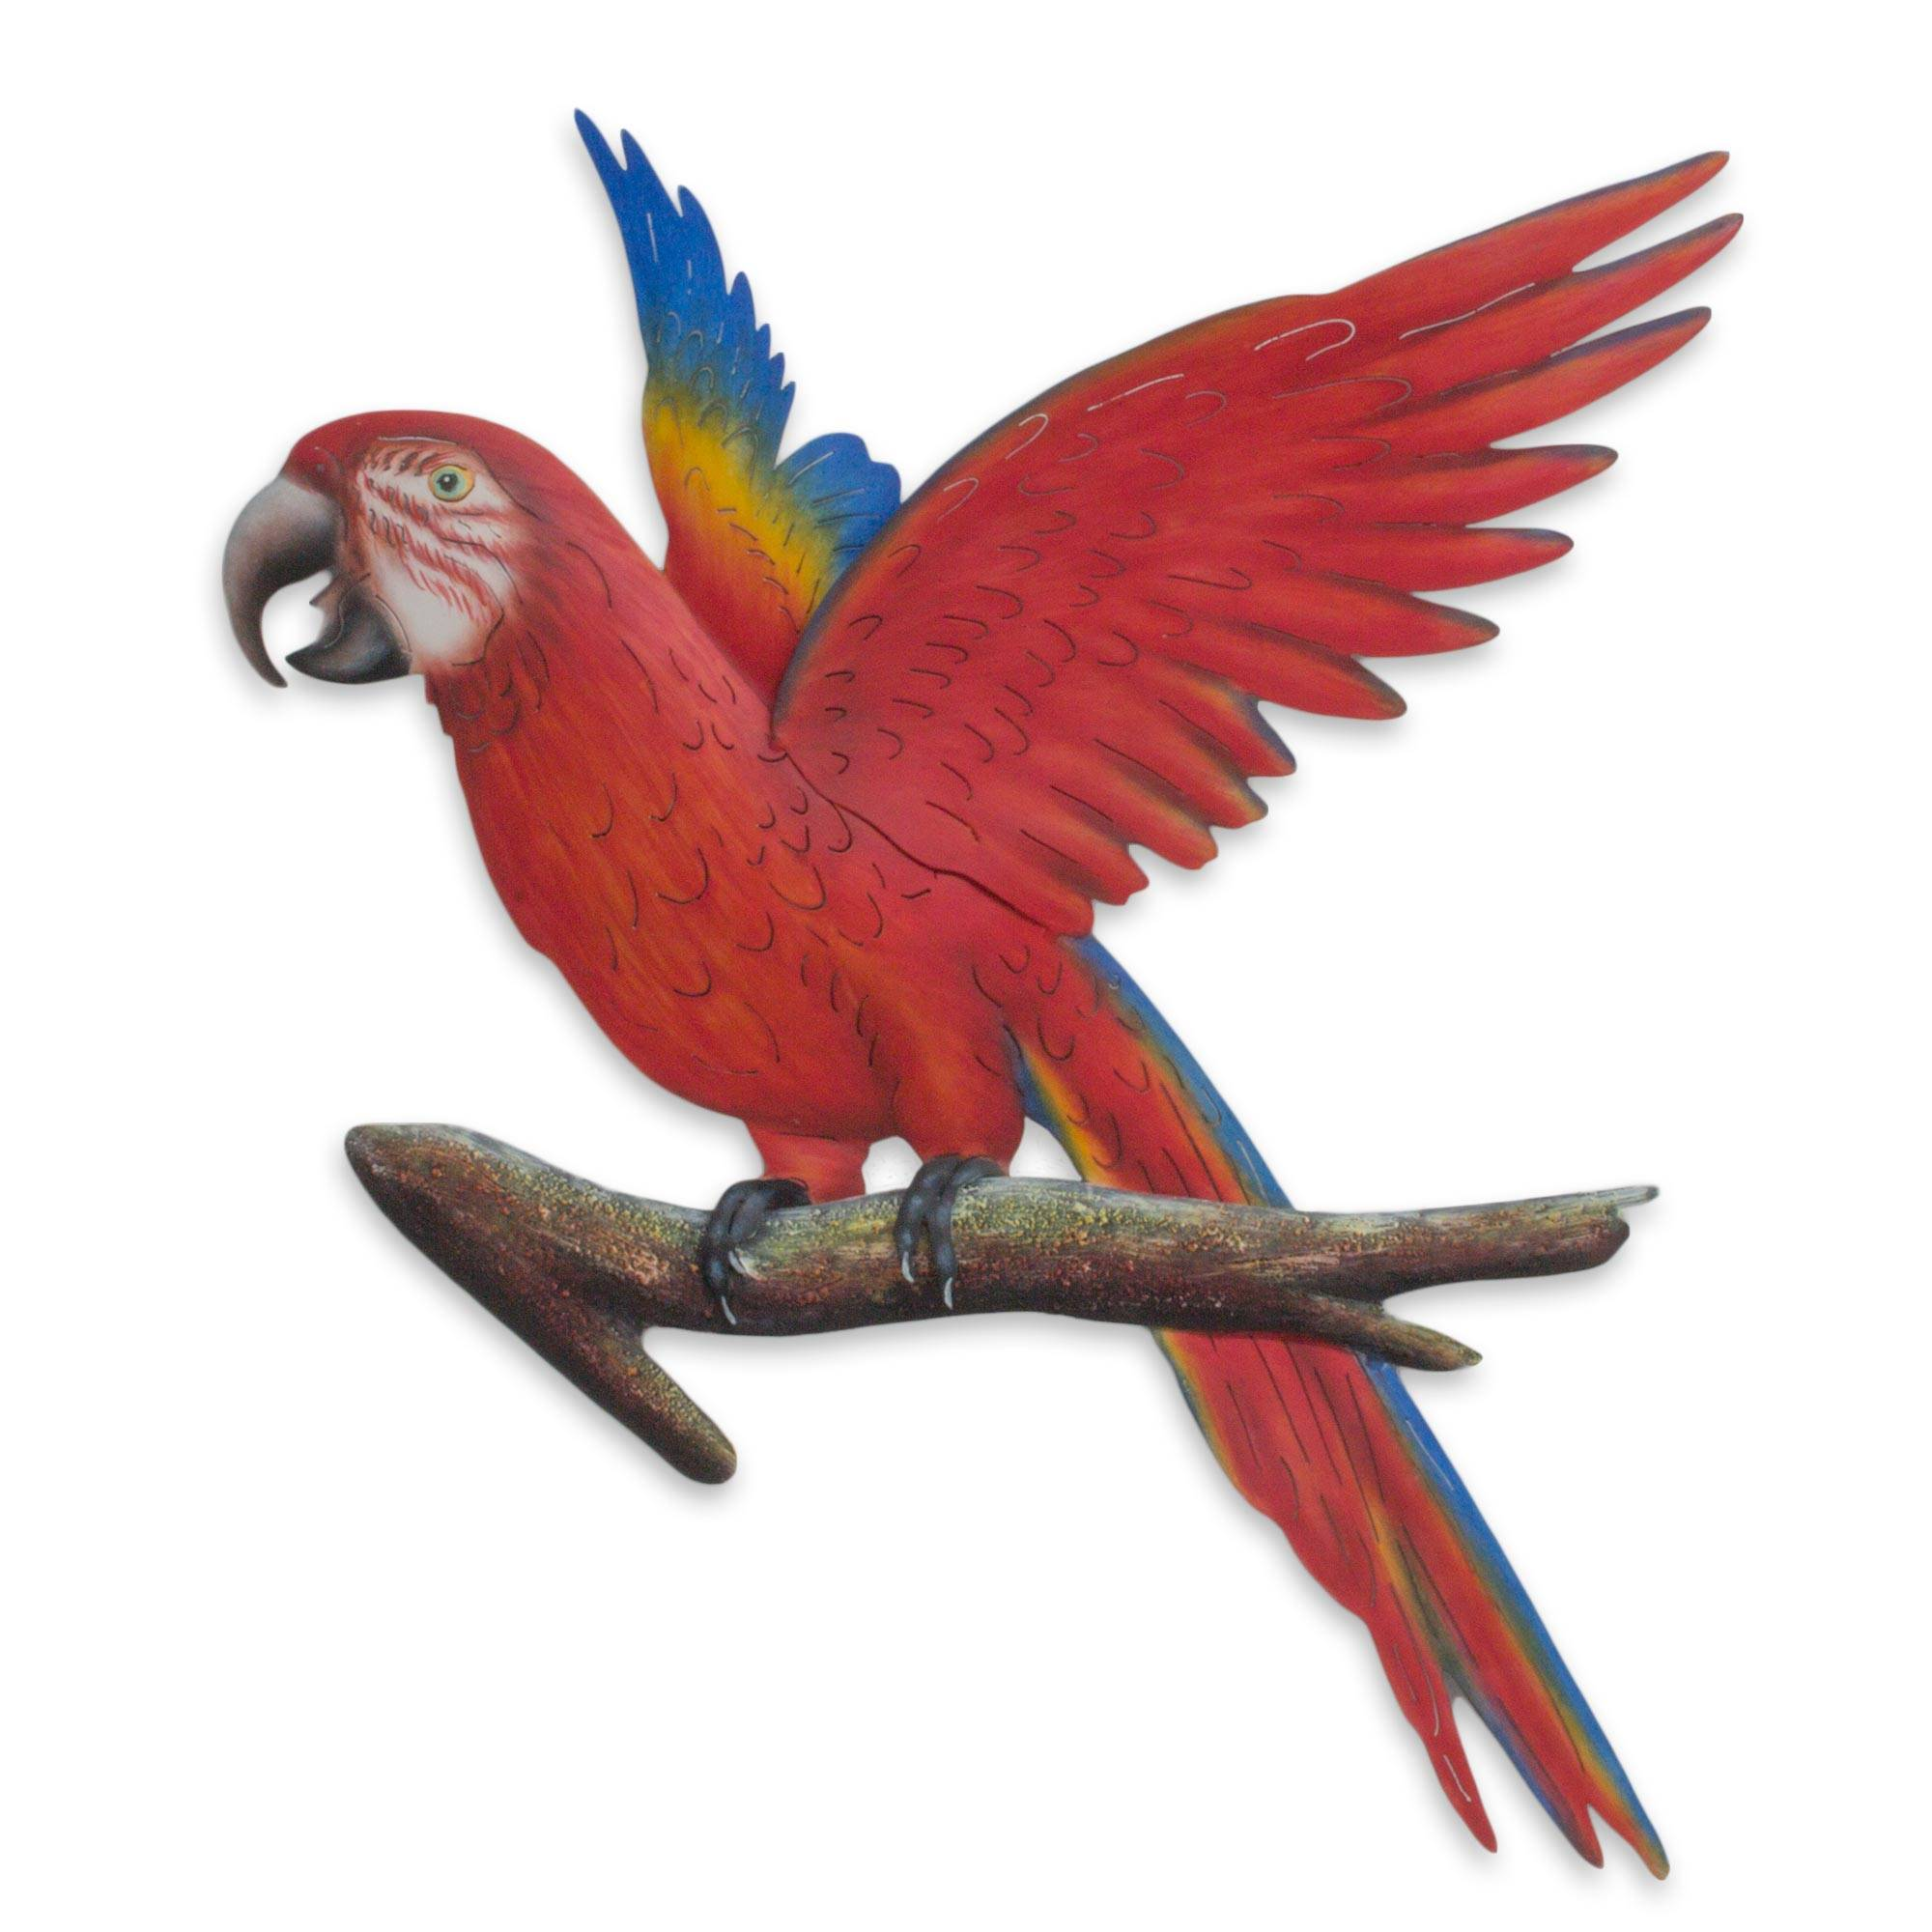 Handcrafted Red Steel Bird Theme Wall Sculpture from Mexico, 'Scarlet Macaw'